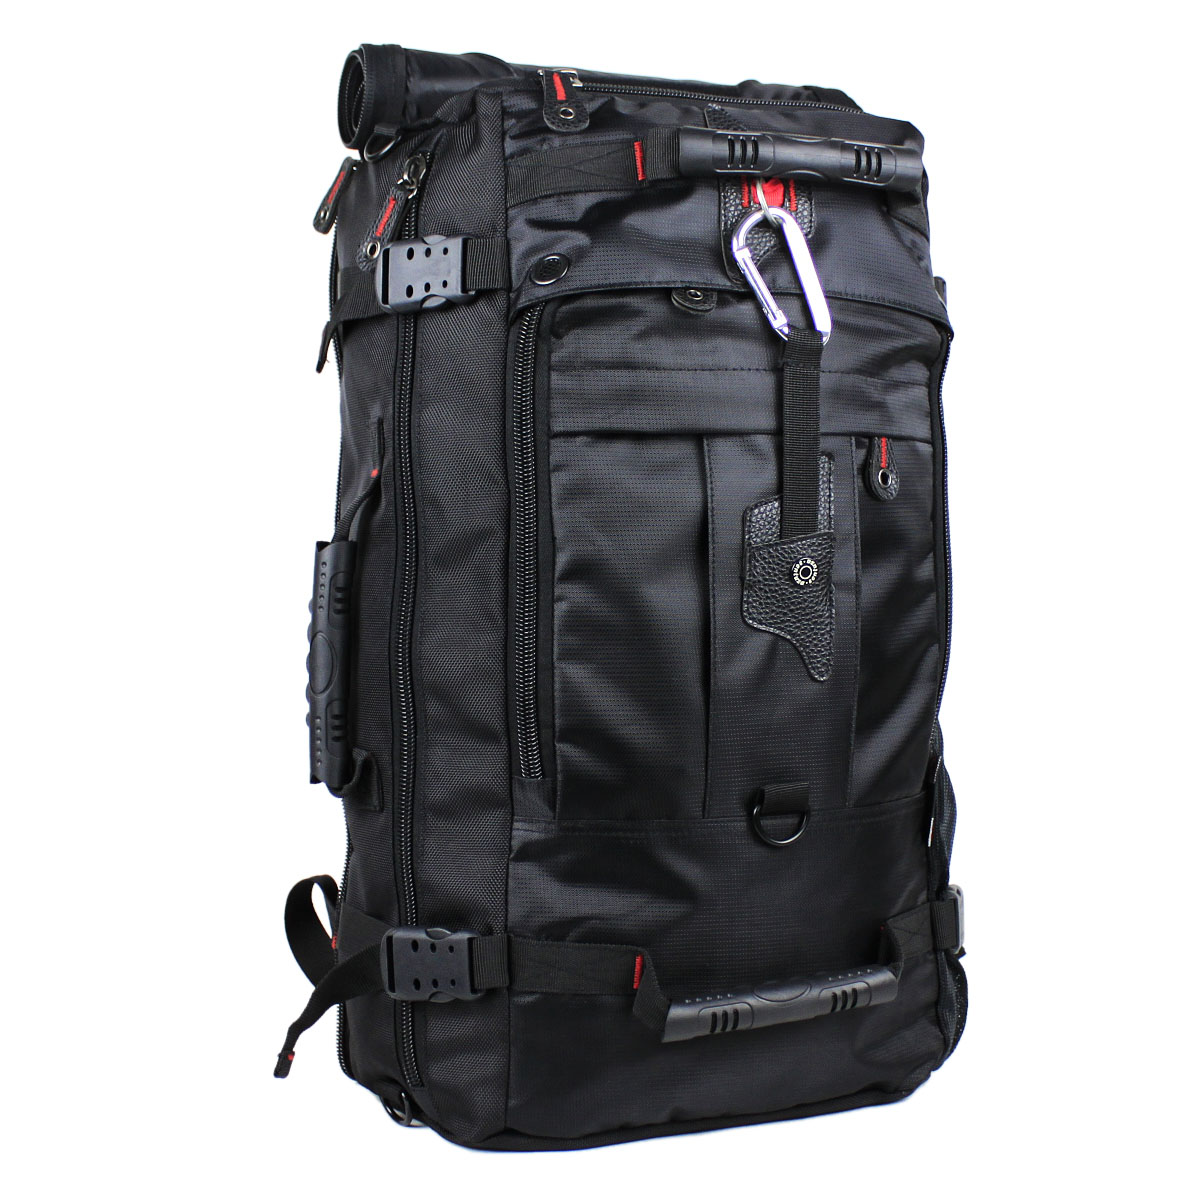 Waterproof Travel Backpack vkjRe0WS